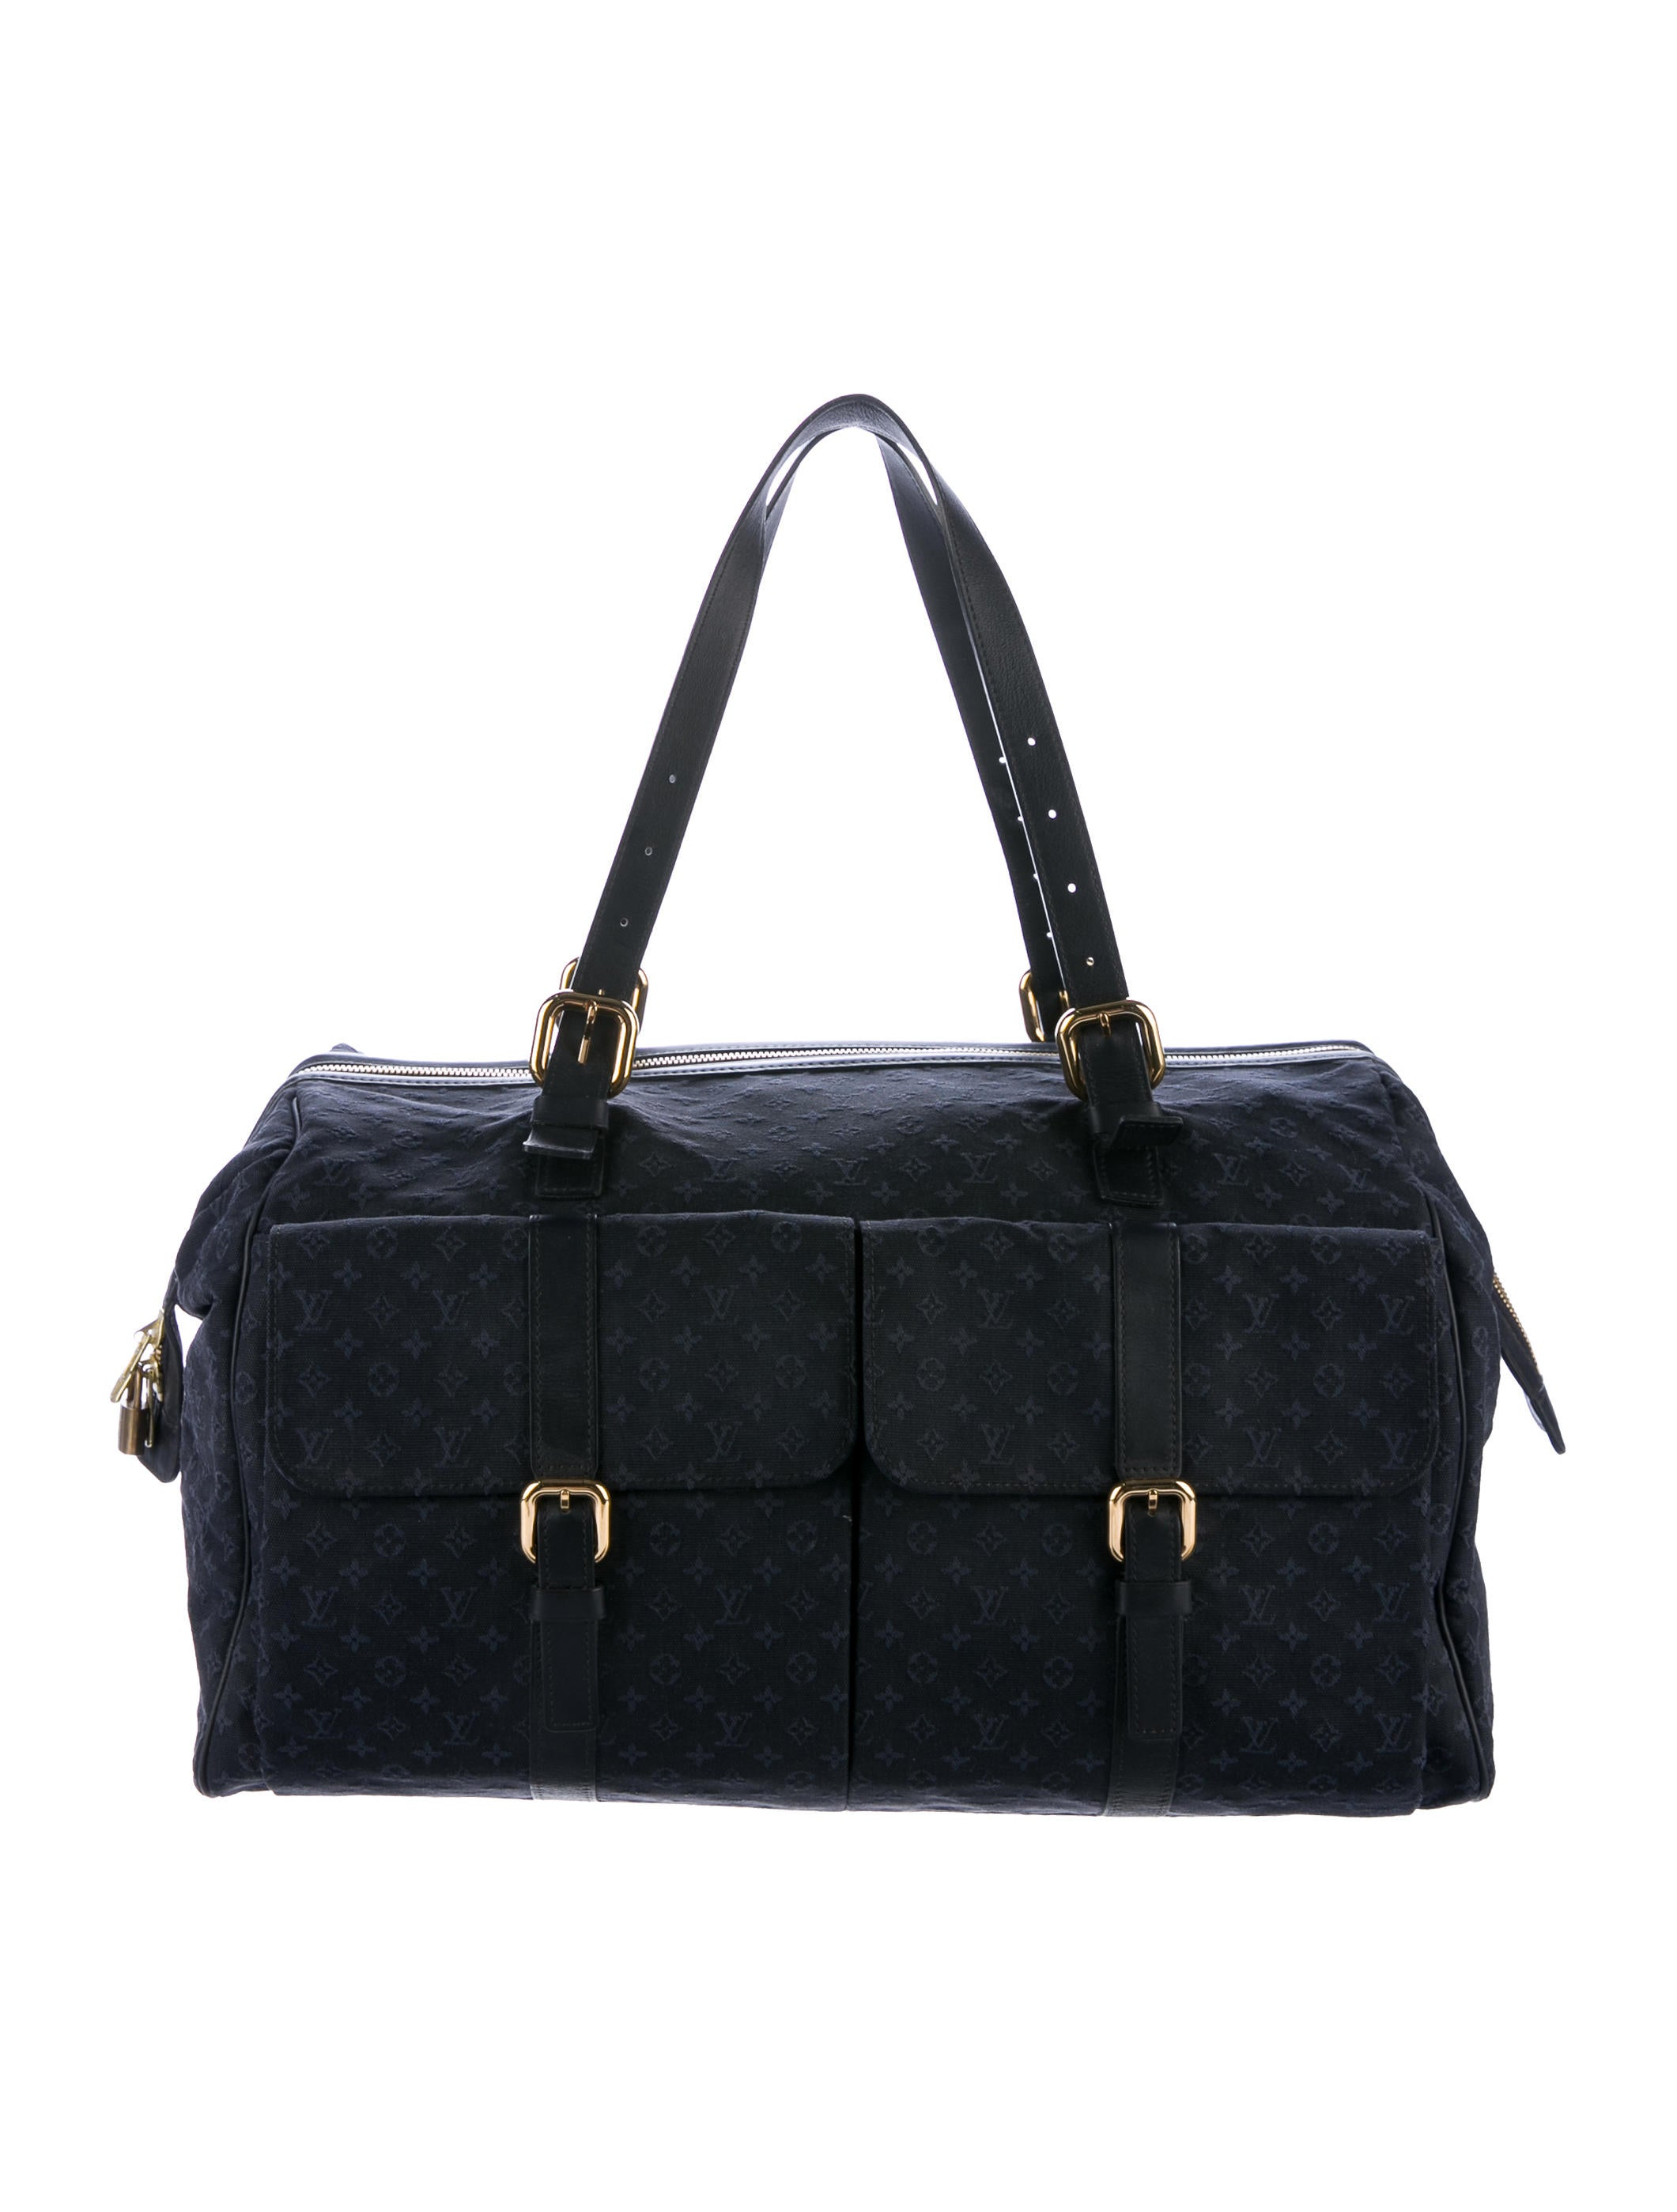 louis vuitton mini lin louise weekender bag bags lou123964 the realreal. Black Bedroom Furniture Sets. Home Design Ideas